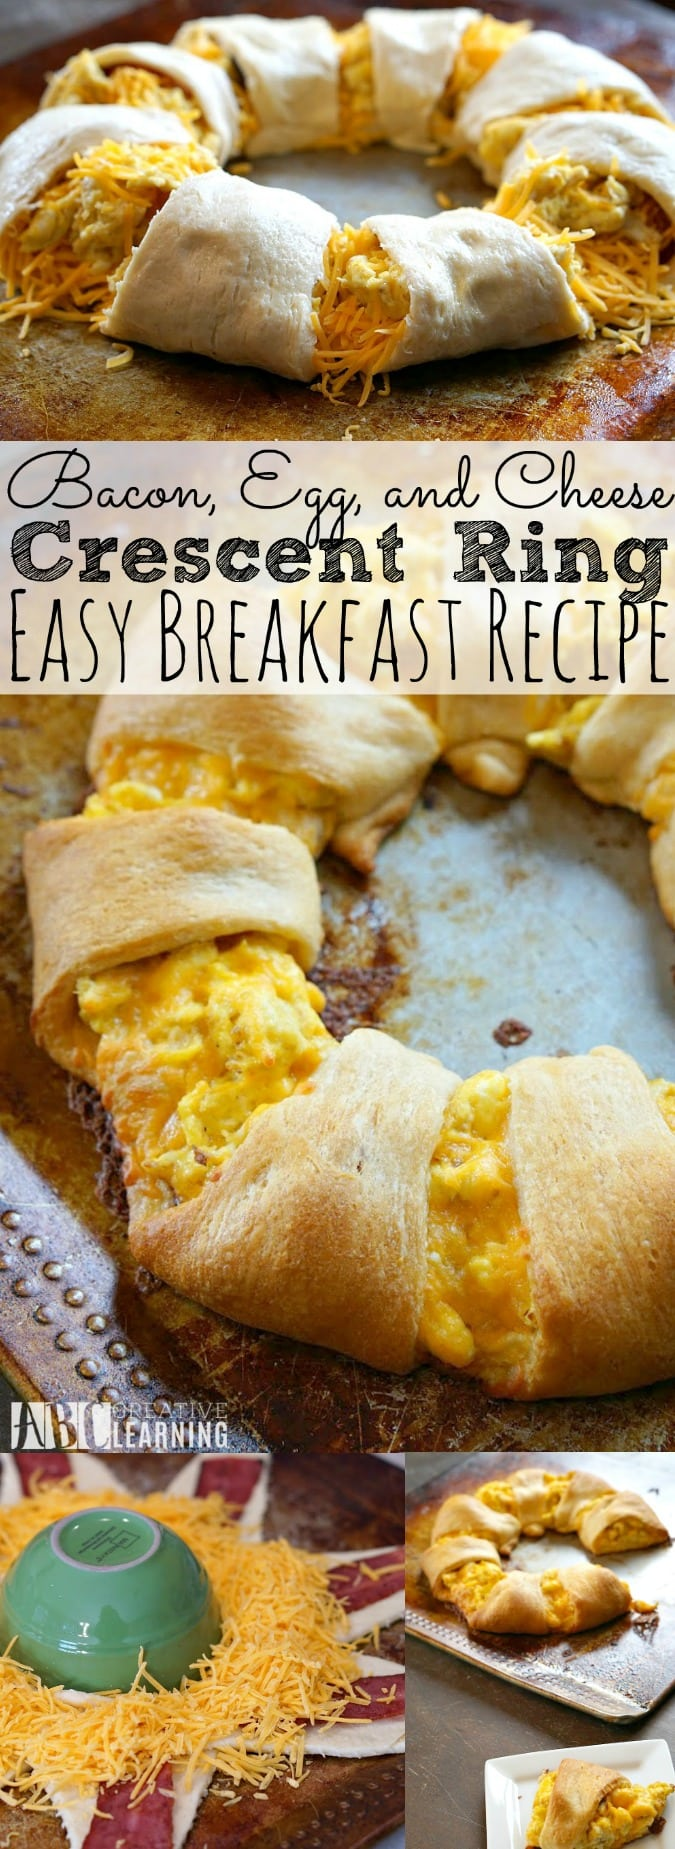 Bacon, Egg, and Cheese Crescent Ring